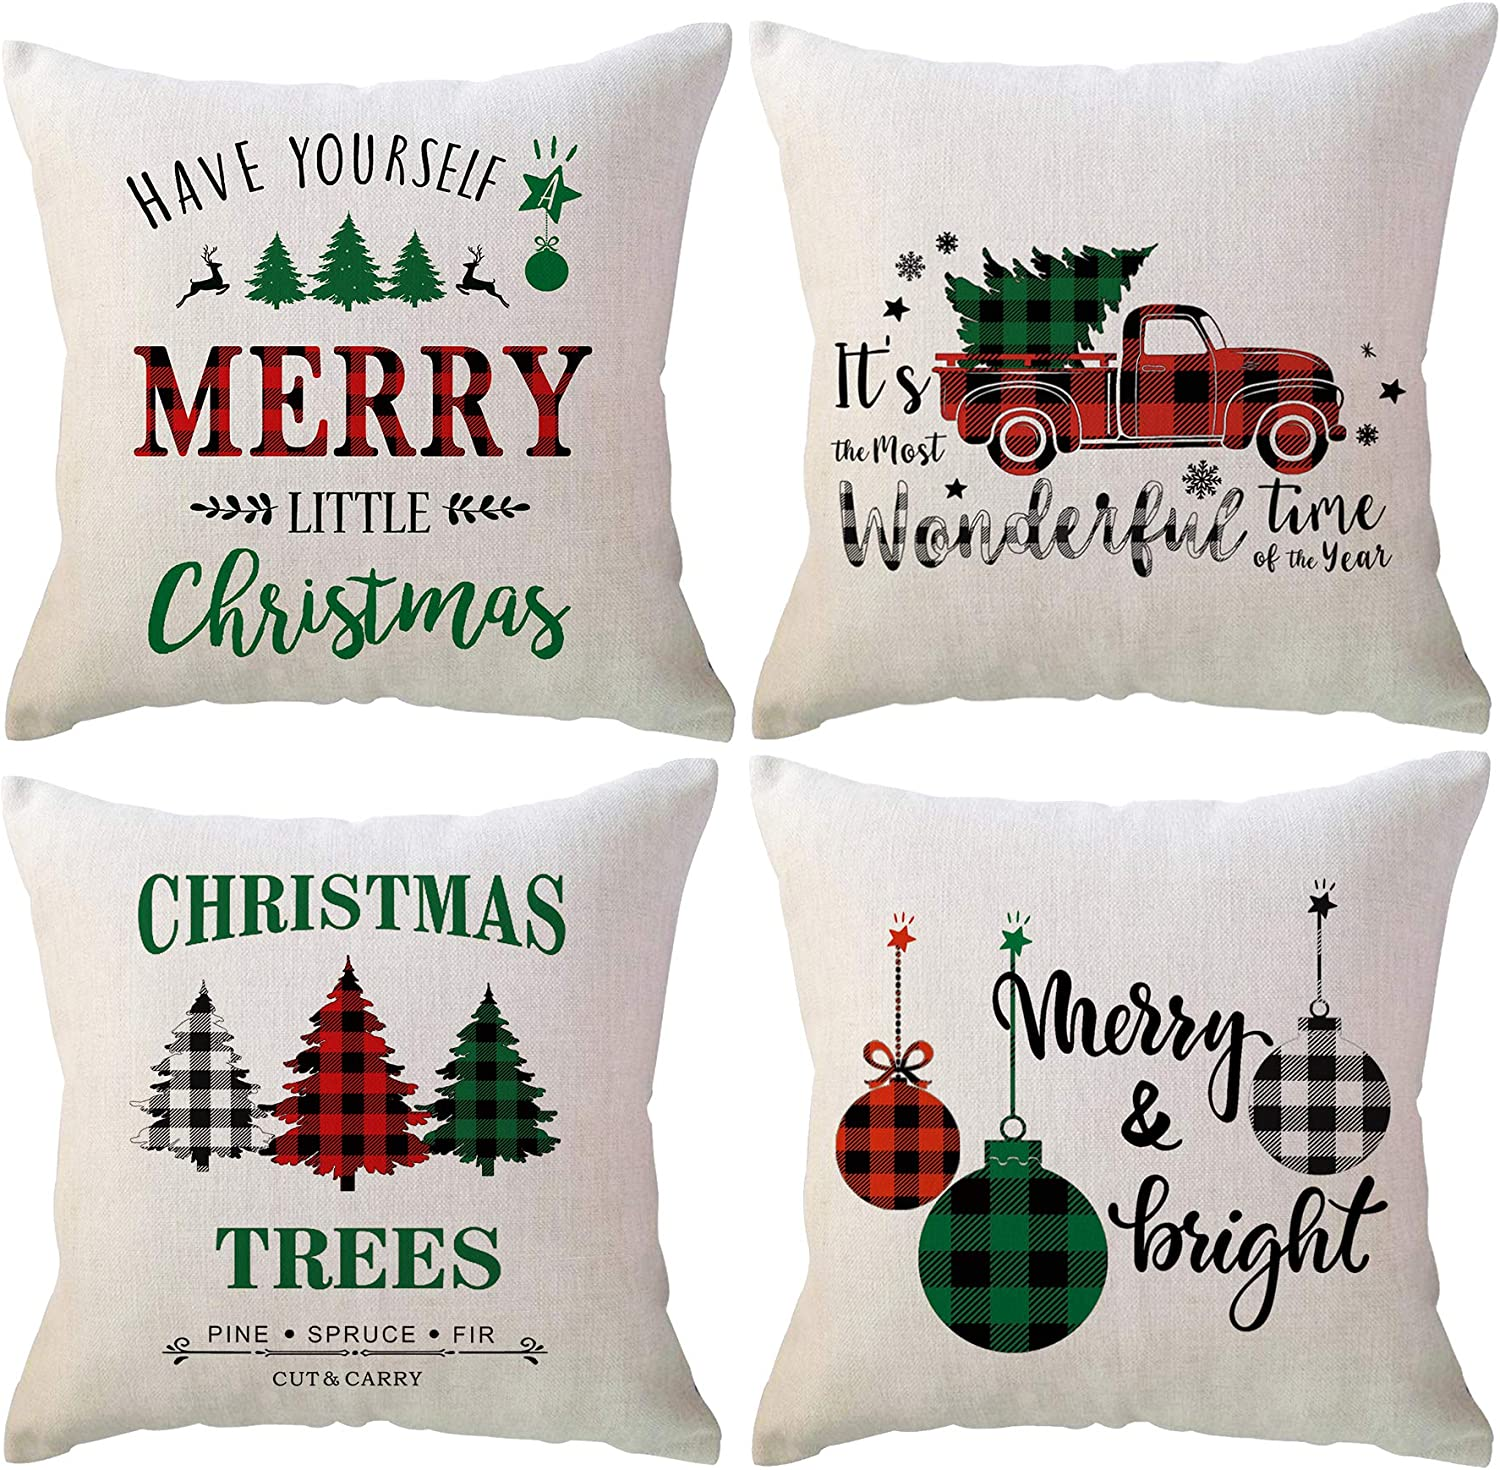 4Pack Christmas Throw Pillow Covers 18 x 18 Inches Red Black Green Buffalo Check Plaids Xmas Trees /Wonderful Time Truck/Christmas ball Holiday Decorative Cushion Pillowcases for Couch/Sofa